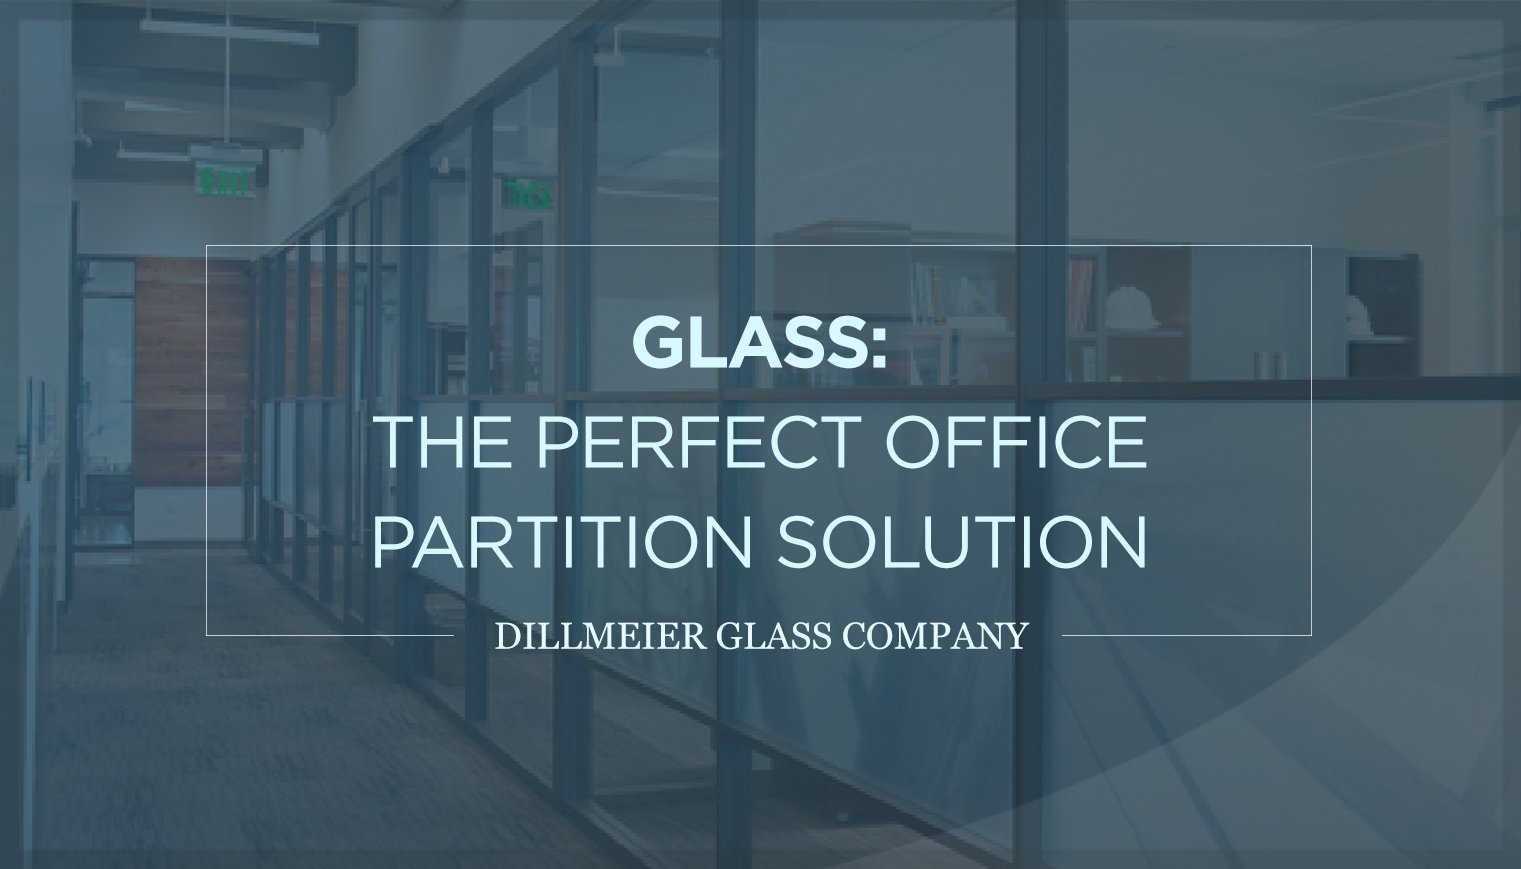 Glass: The Perfect Office Partition Solution